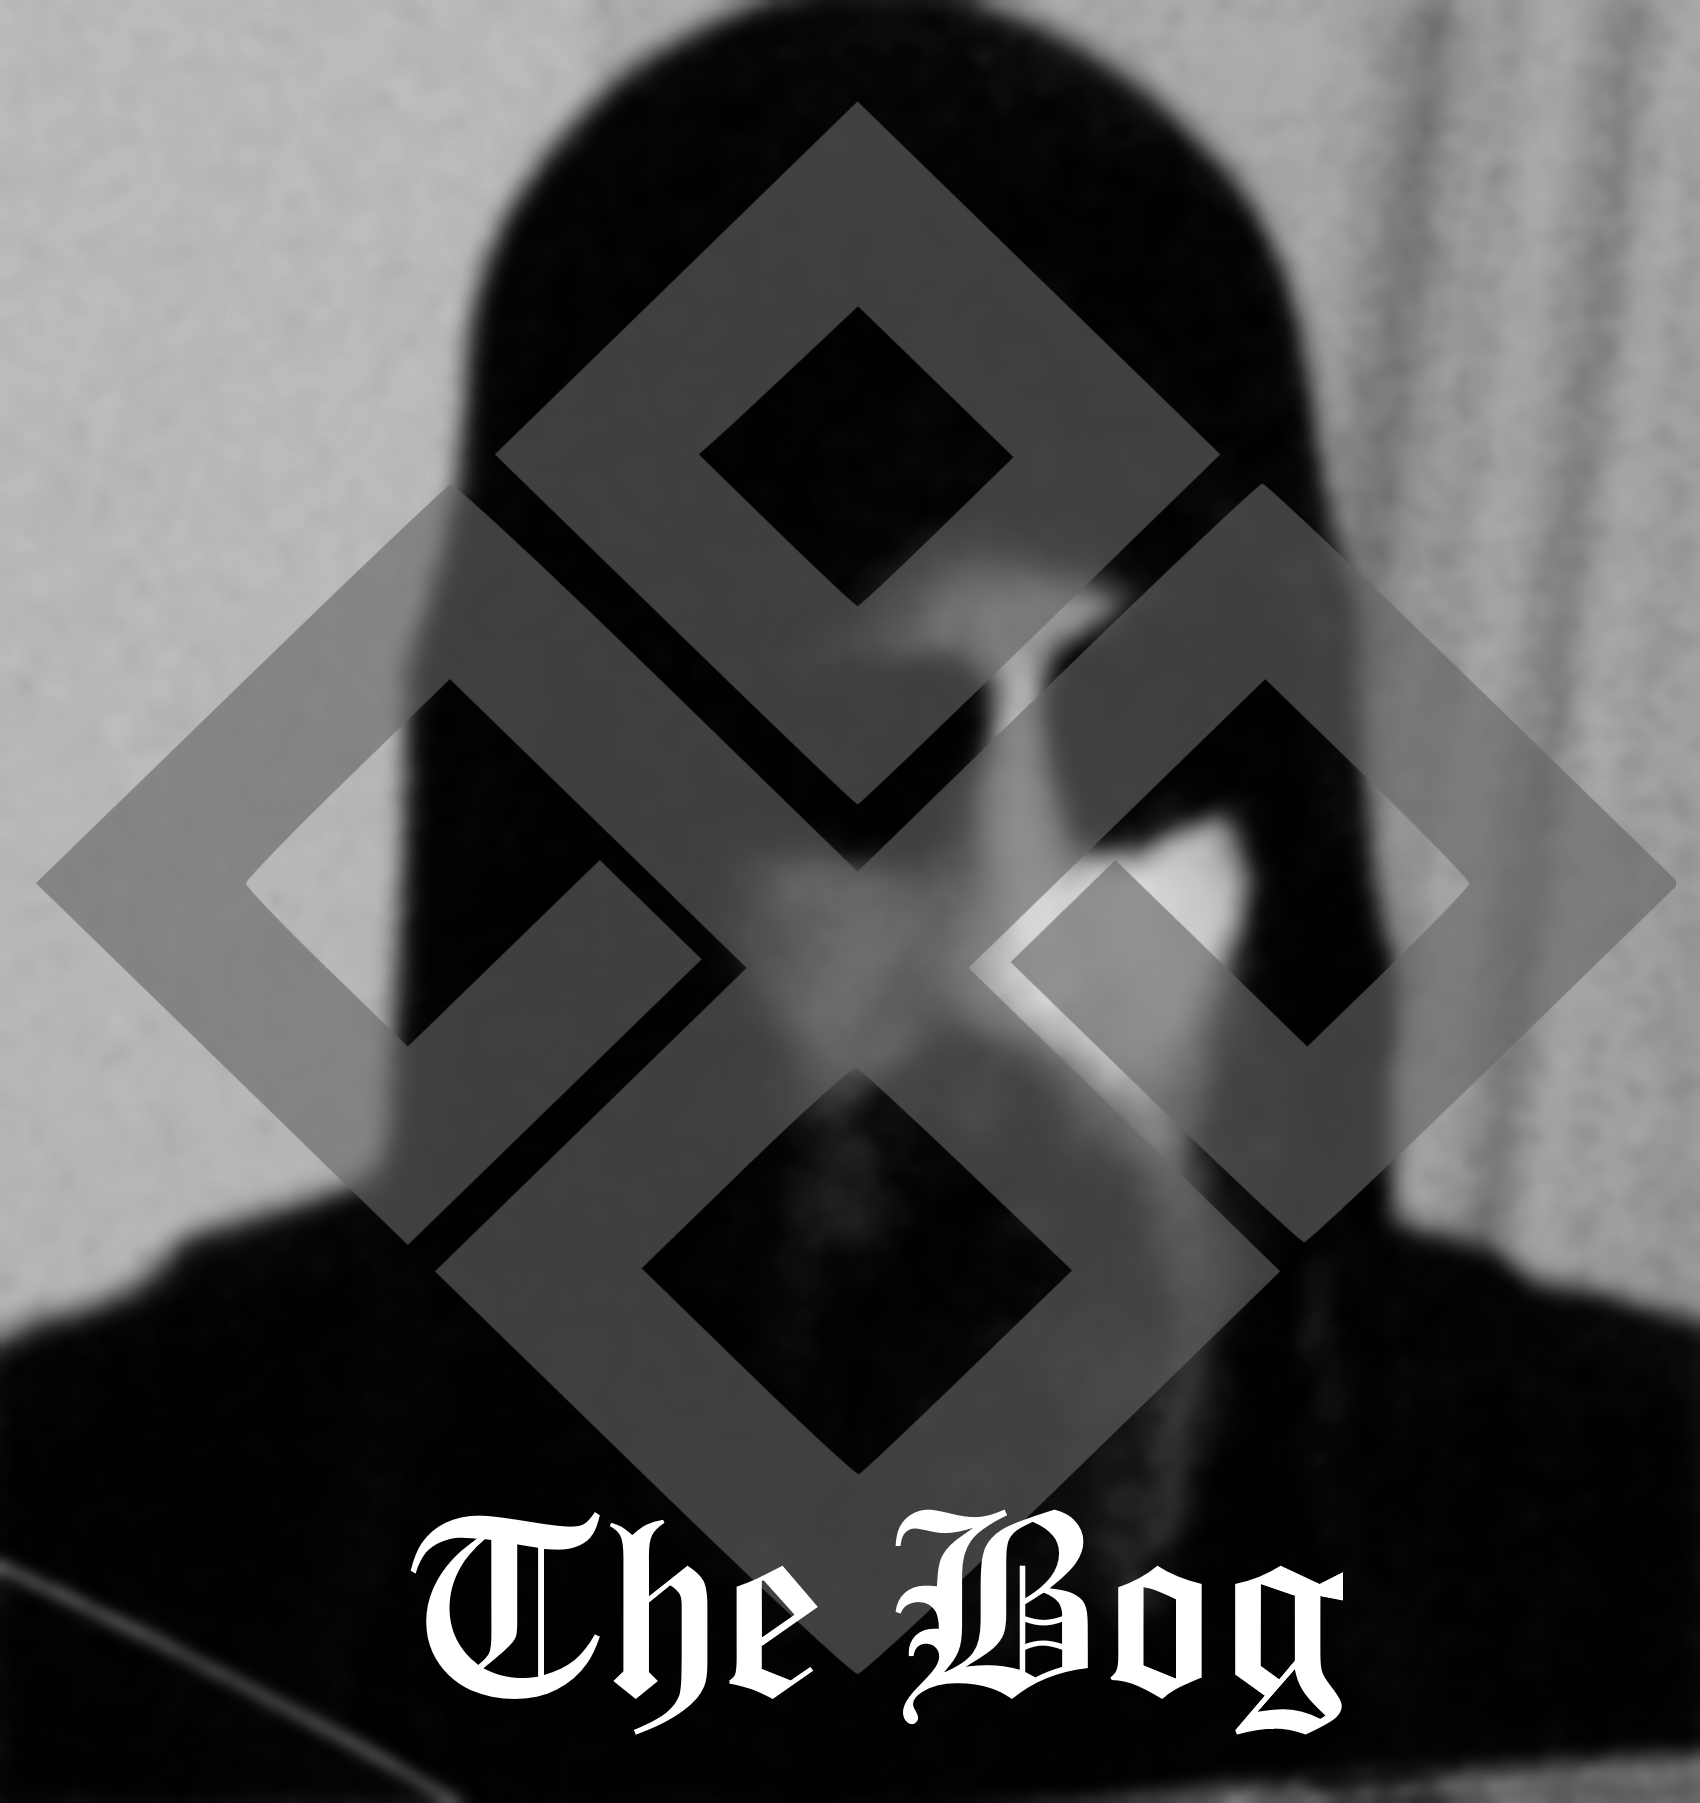 thebogradio